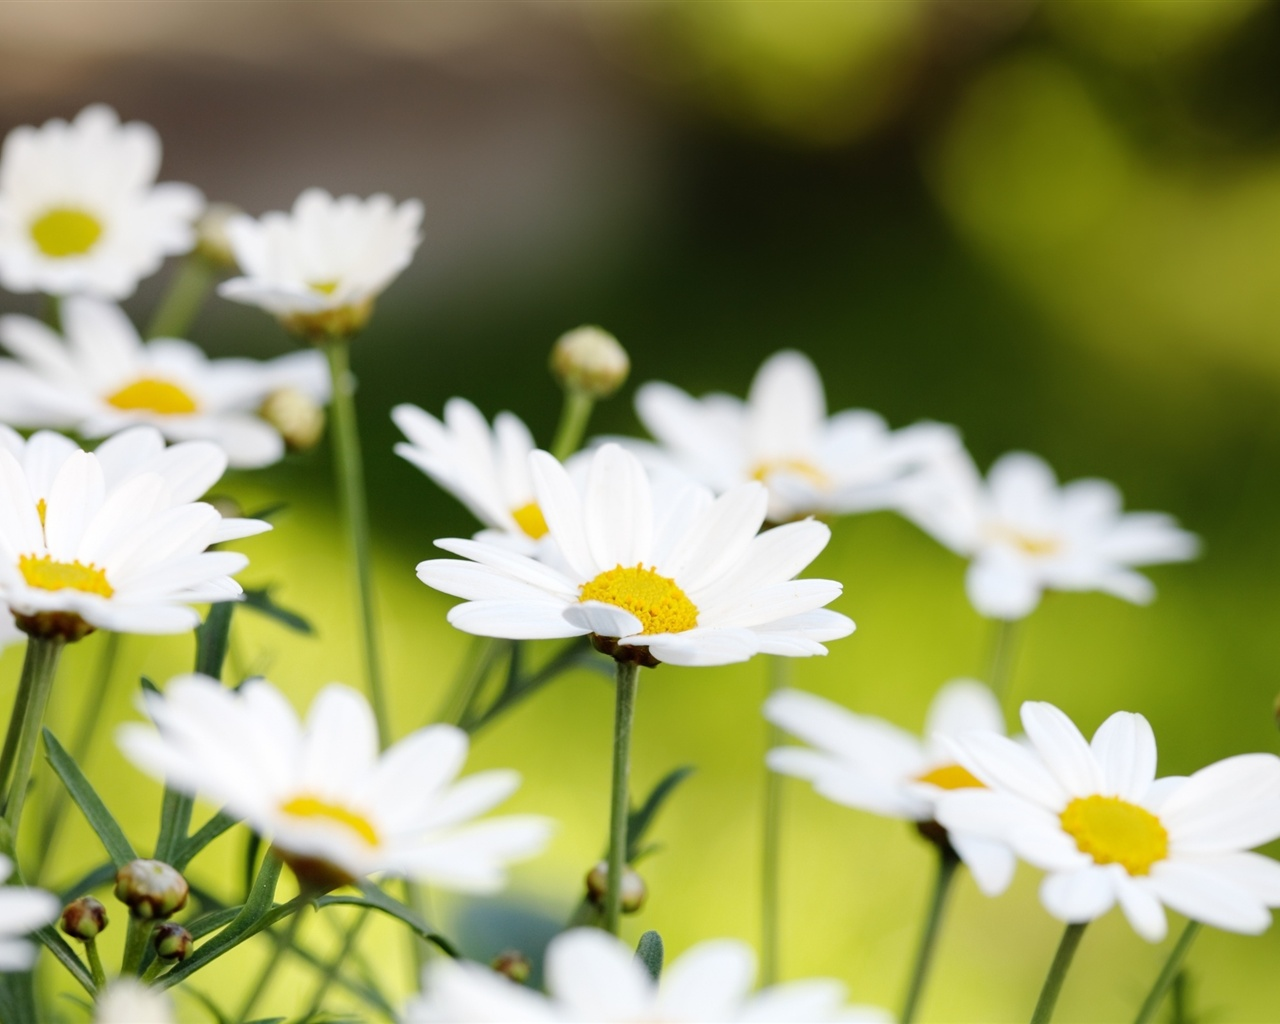 White daisies macro wallpaper - 1280x1024